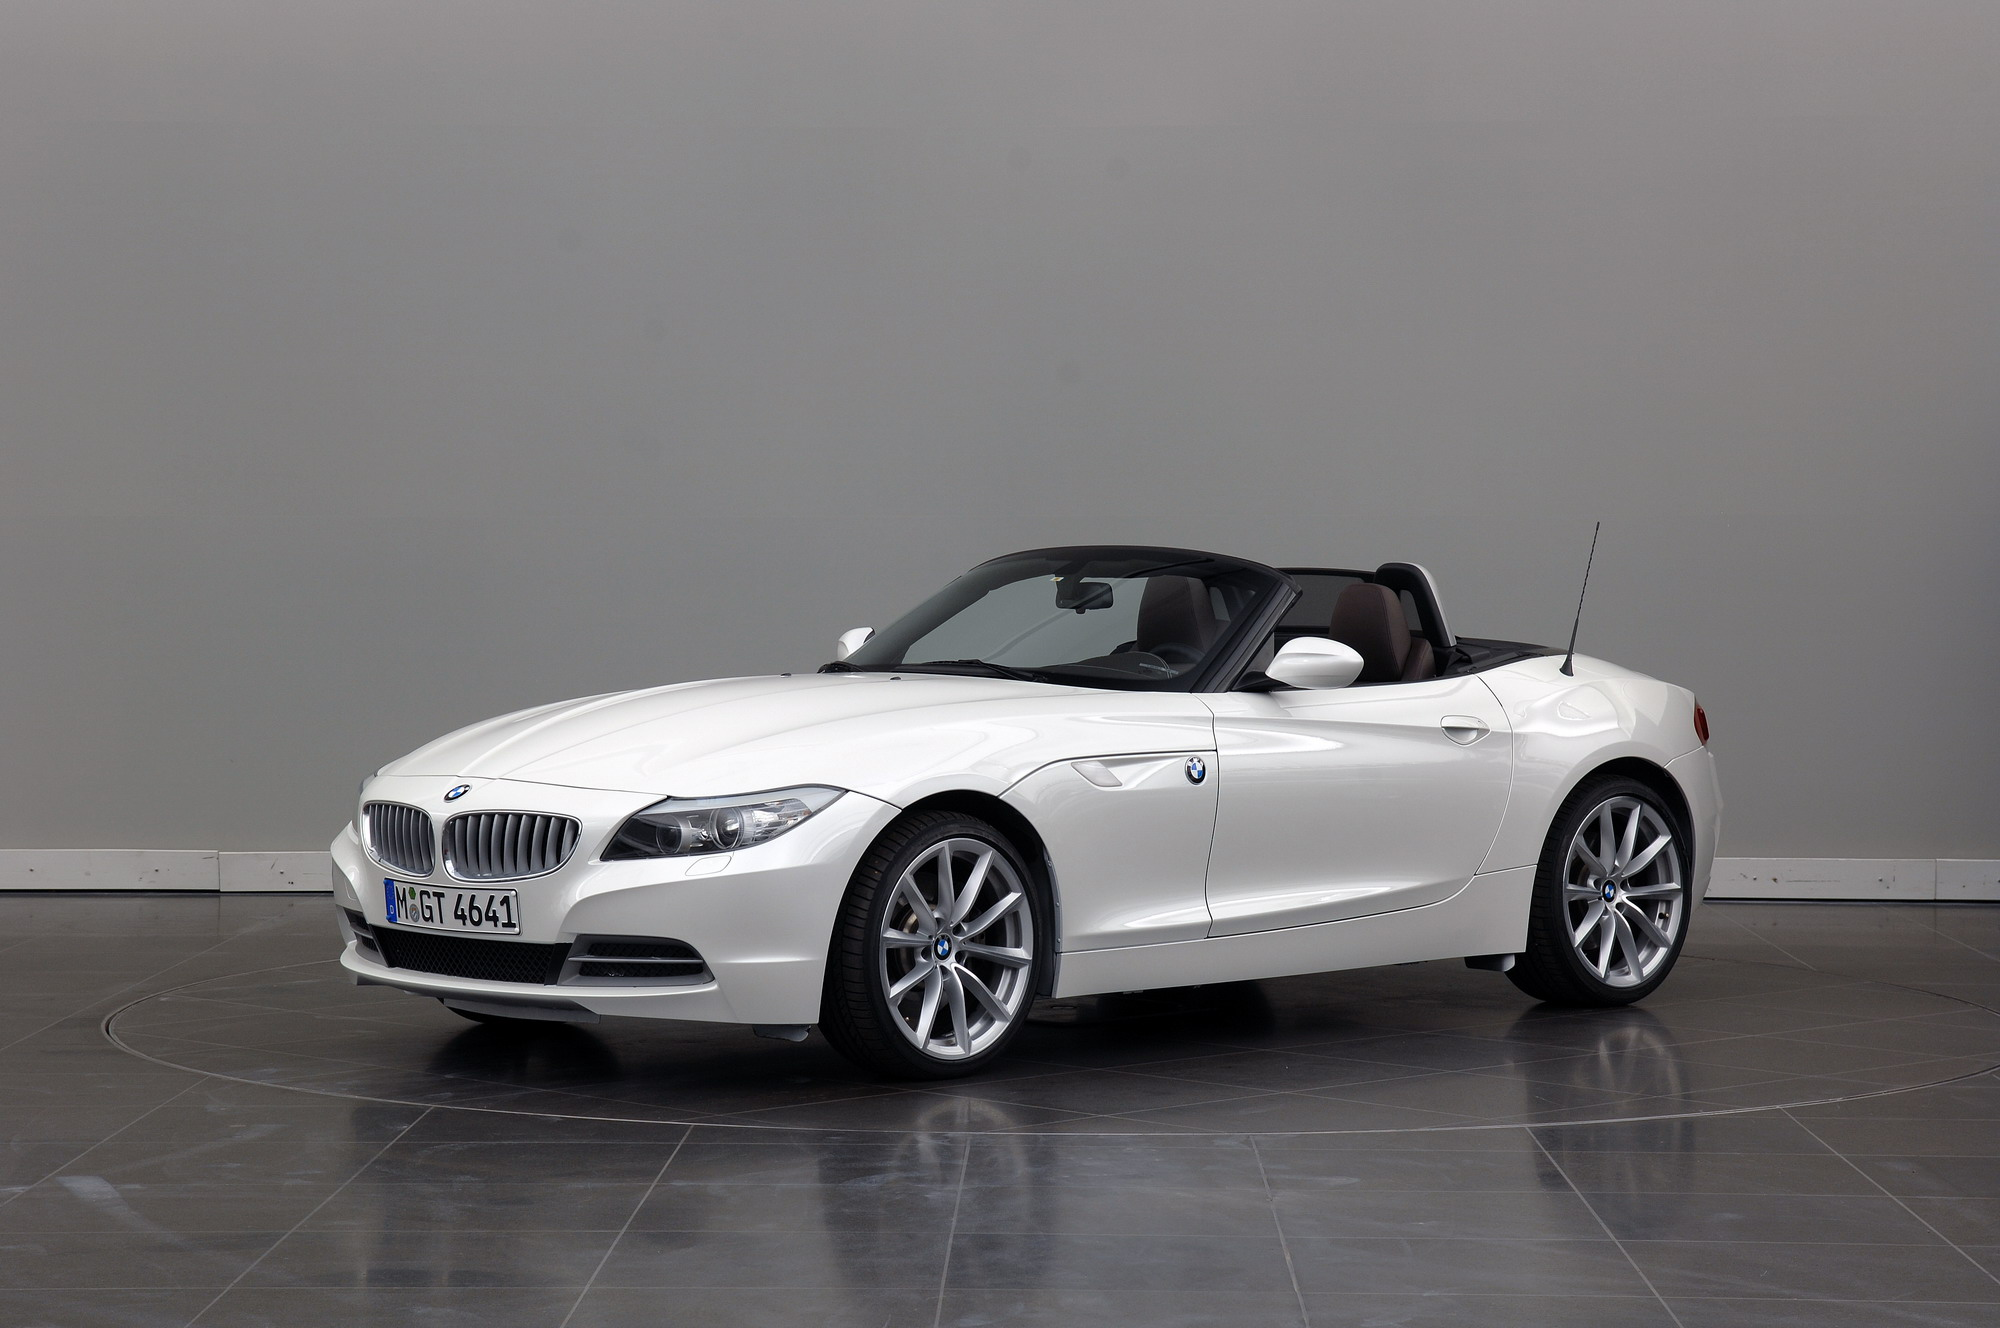 2011 Bmw Z4 Design Pure Balance Review Top Speed